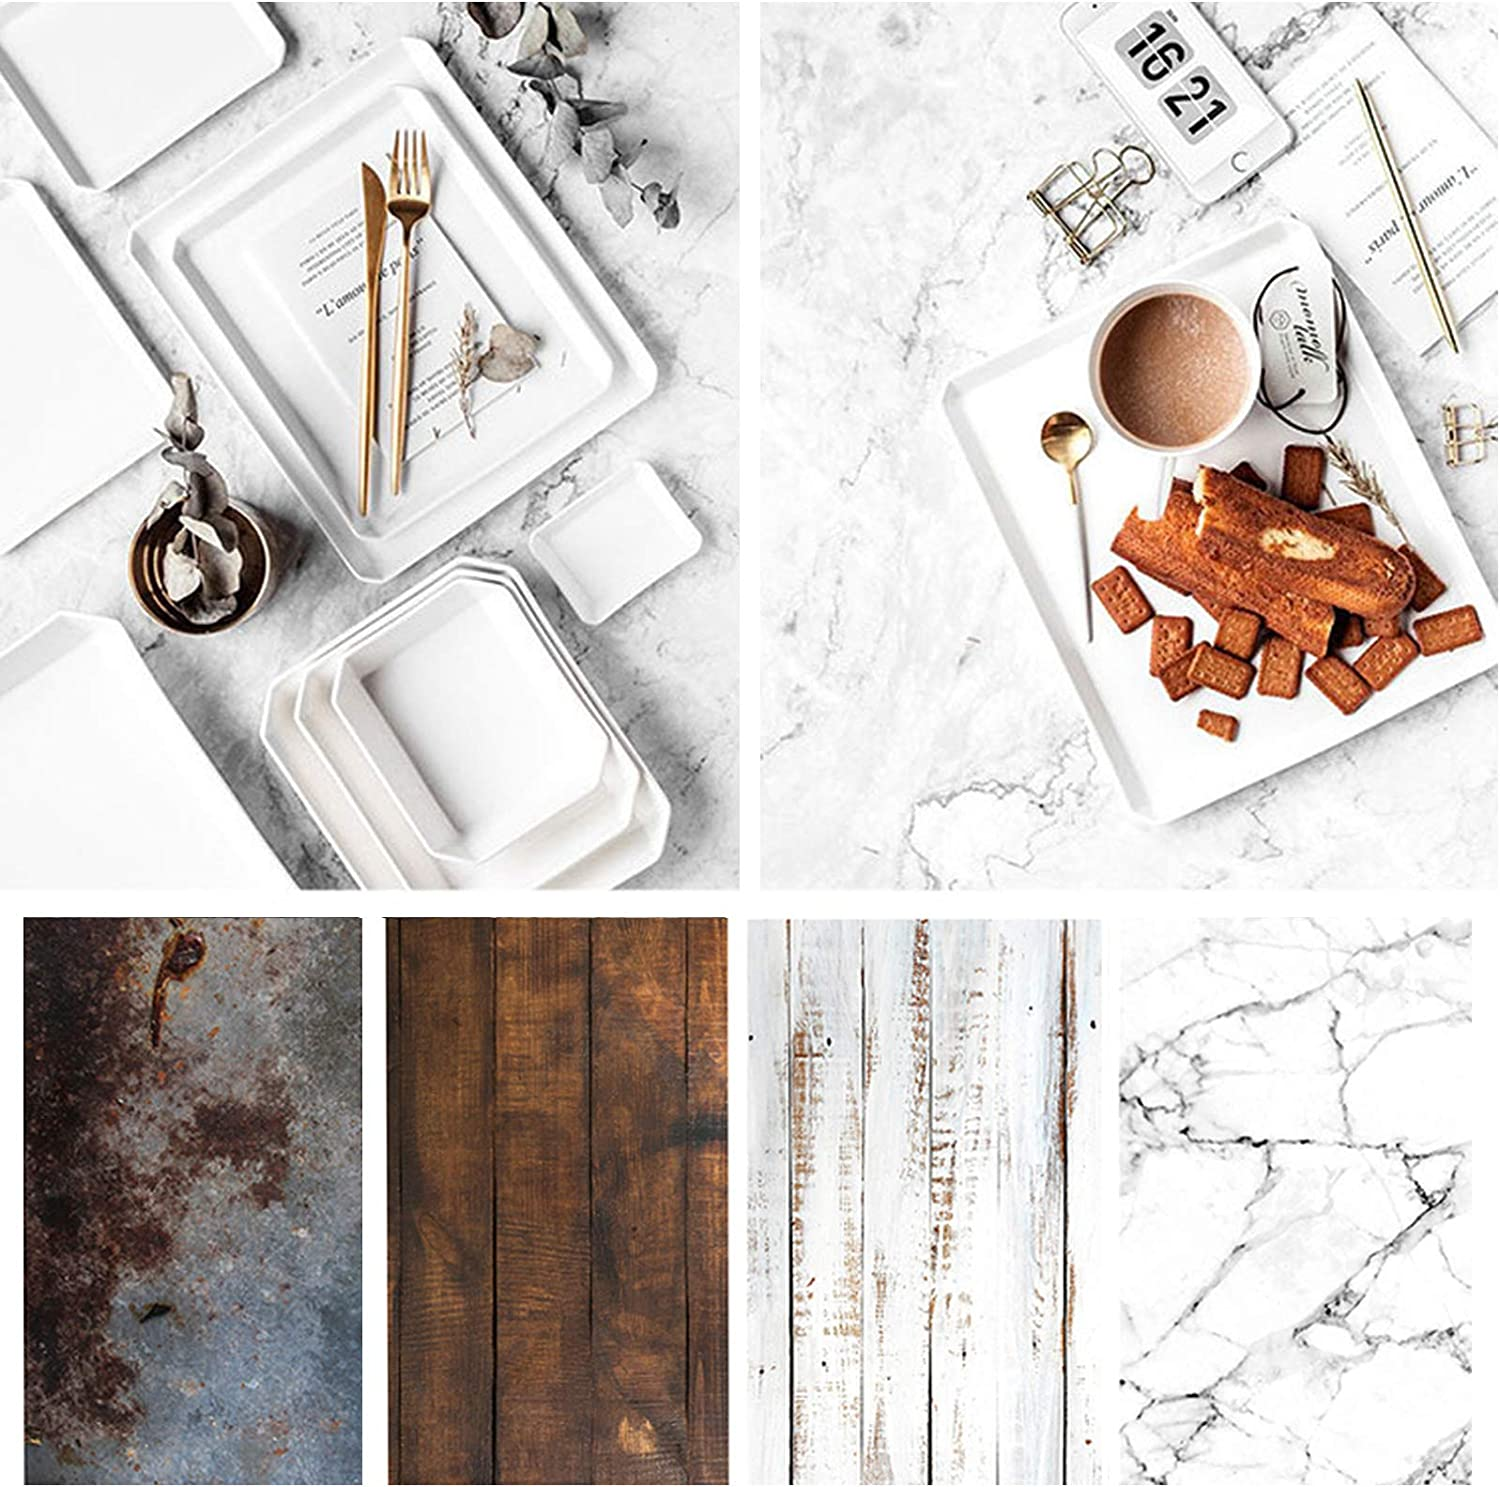 Bcolor Marble Wood Backdrop Photography Paper 4 Pack Kit 22x34Inch/ 56x86cm Flat Lay Double Sided Rustic Photo Background Rolls for Food Product Jewelry Tabletop Props Pictures, 8 Pattern